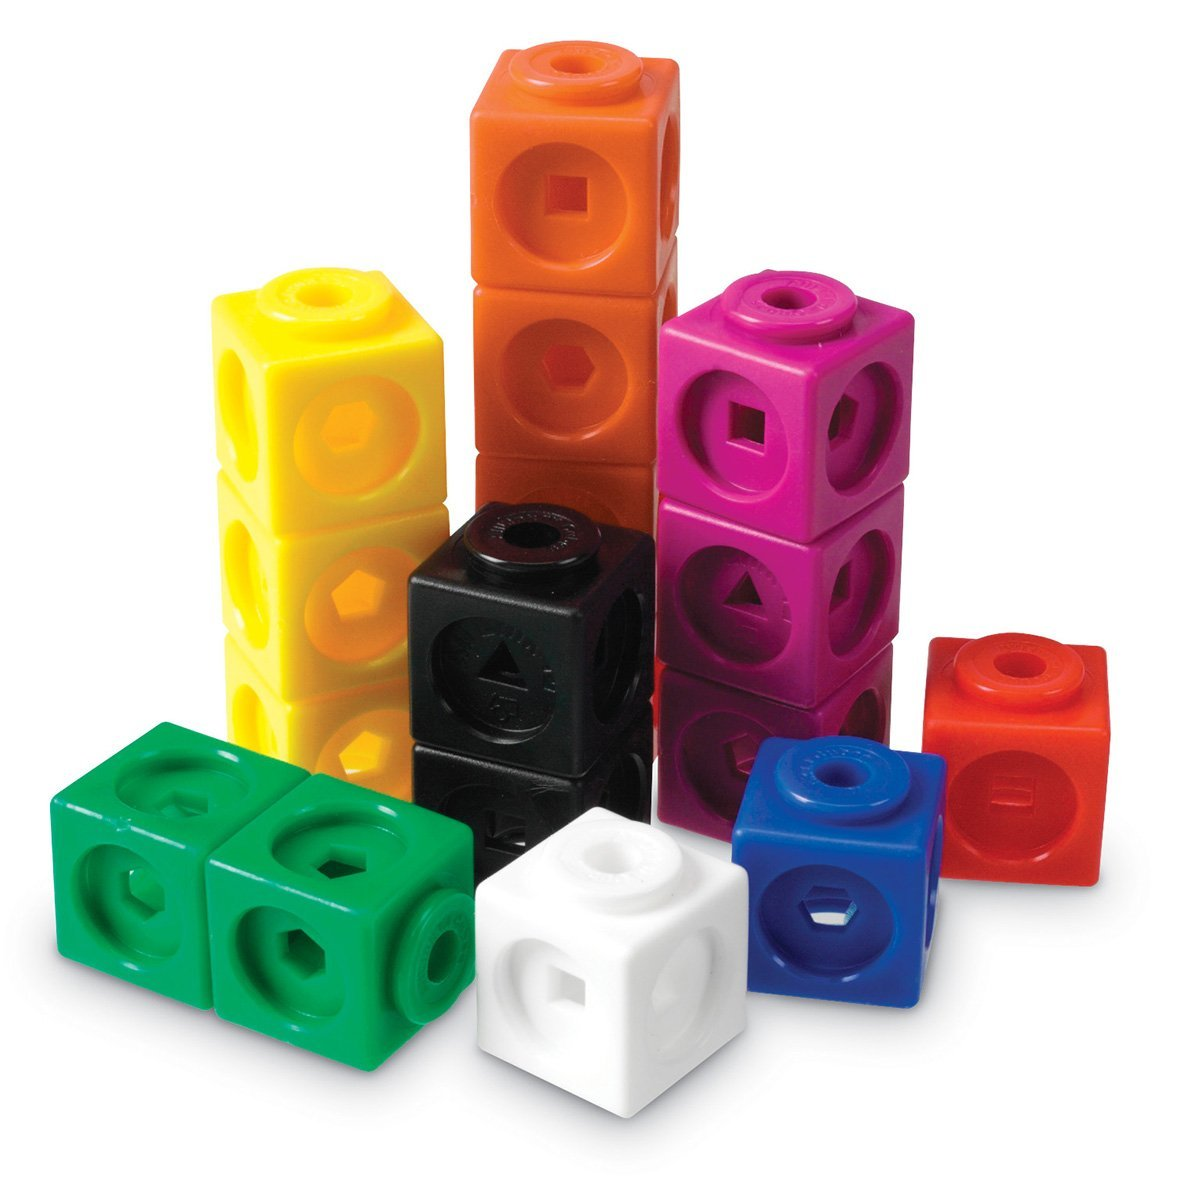 math manipulatives every classroom needs - snap cubes